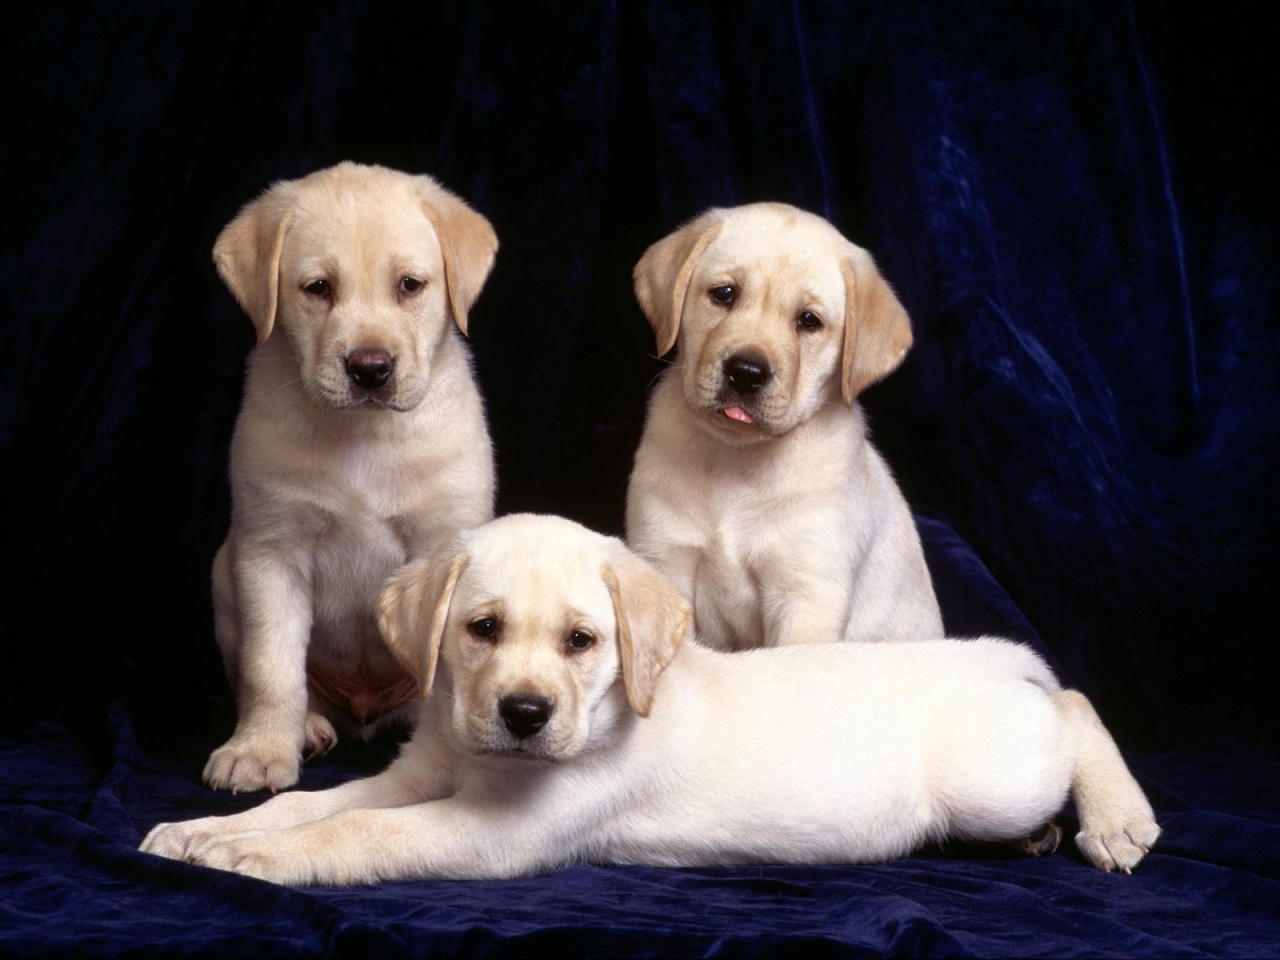 Cute&Cool Pets 4U: Labrador Puppies Review and Pictures